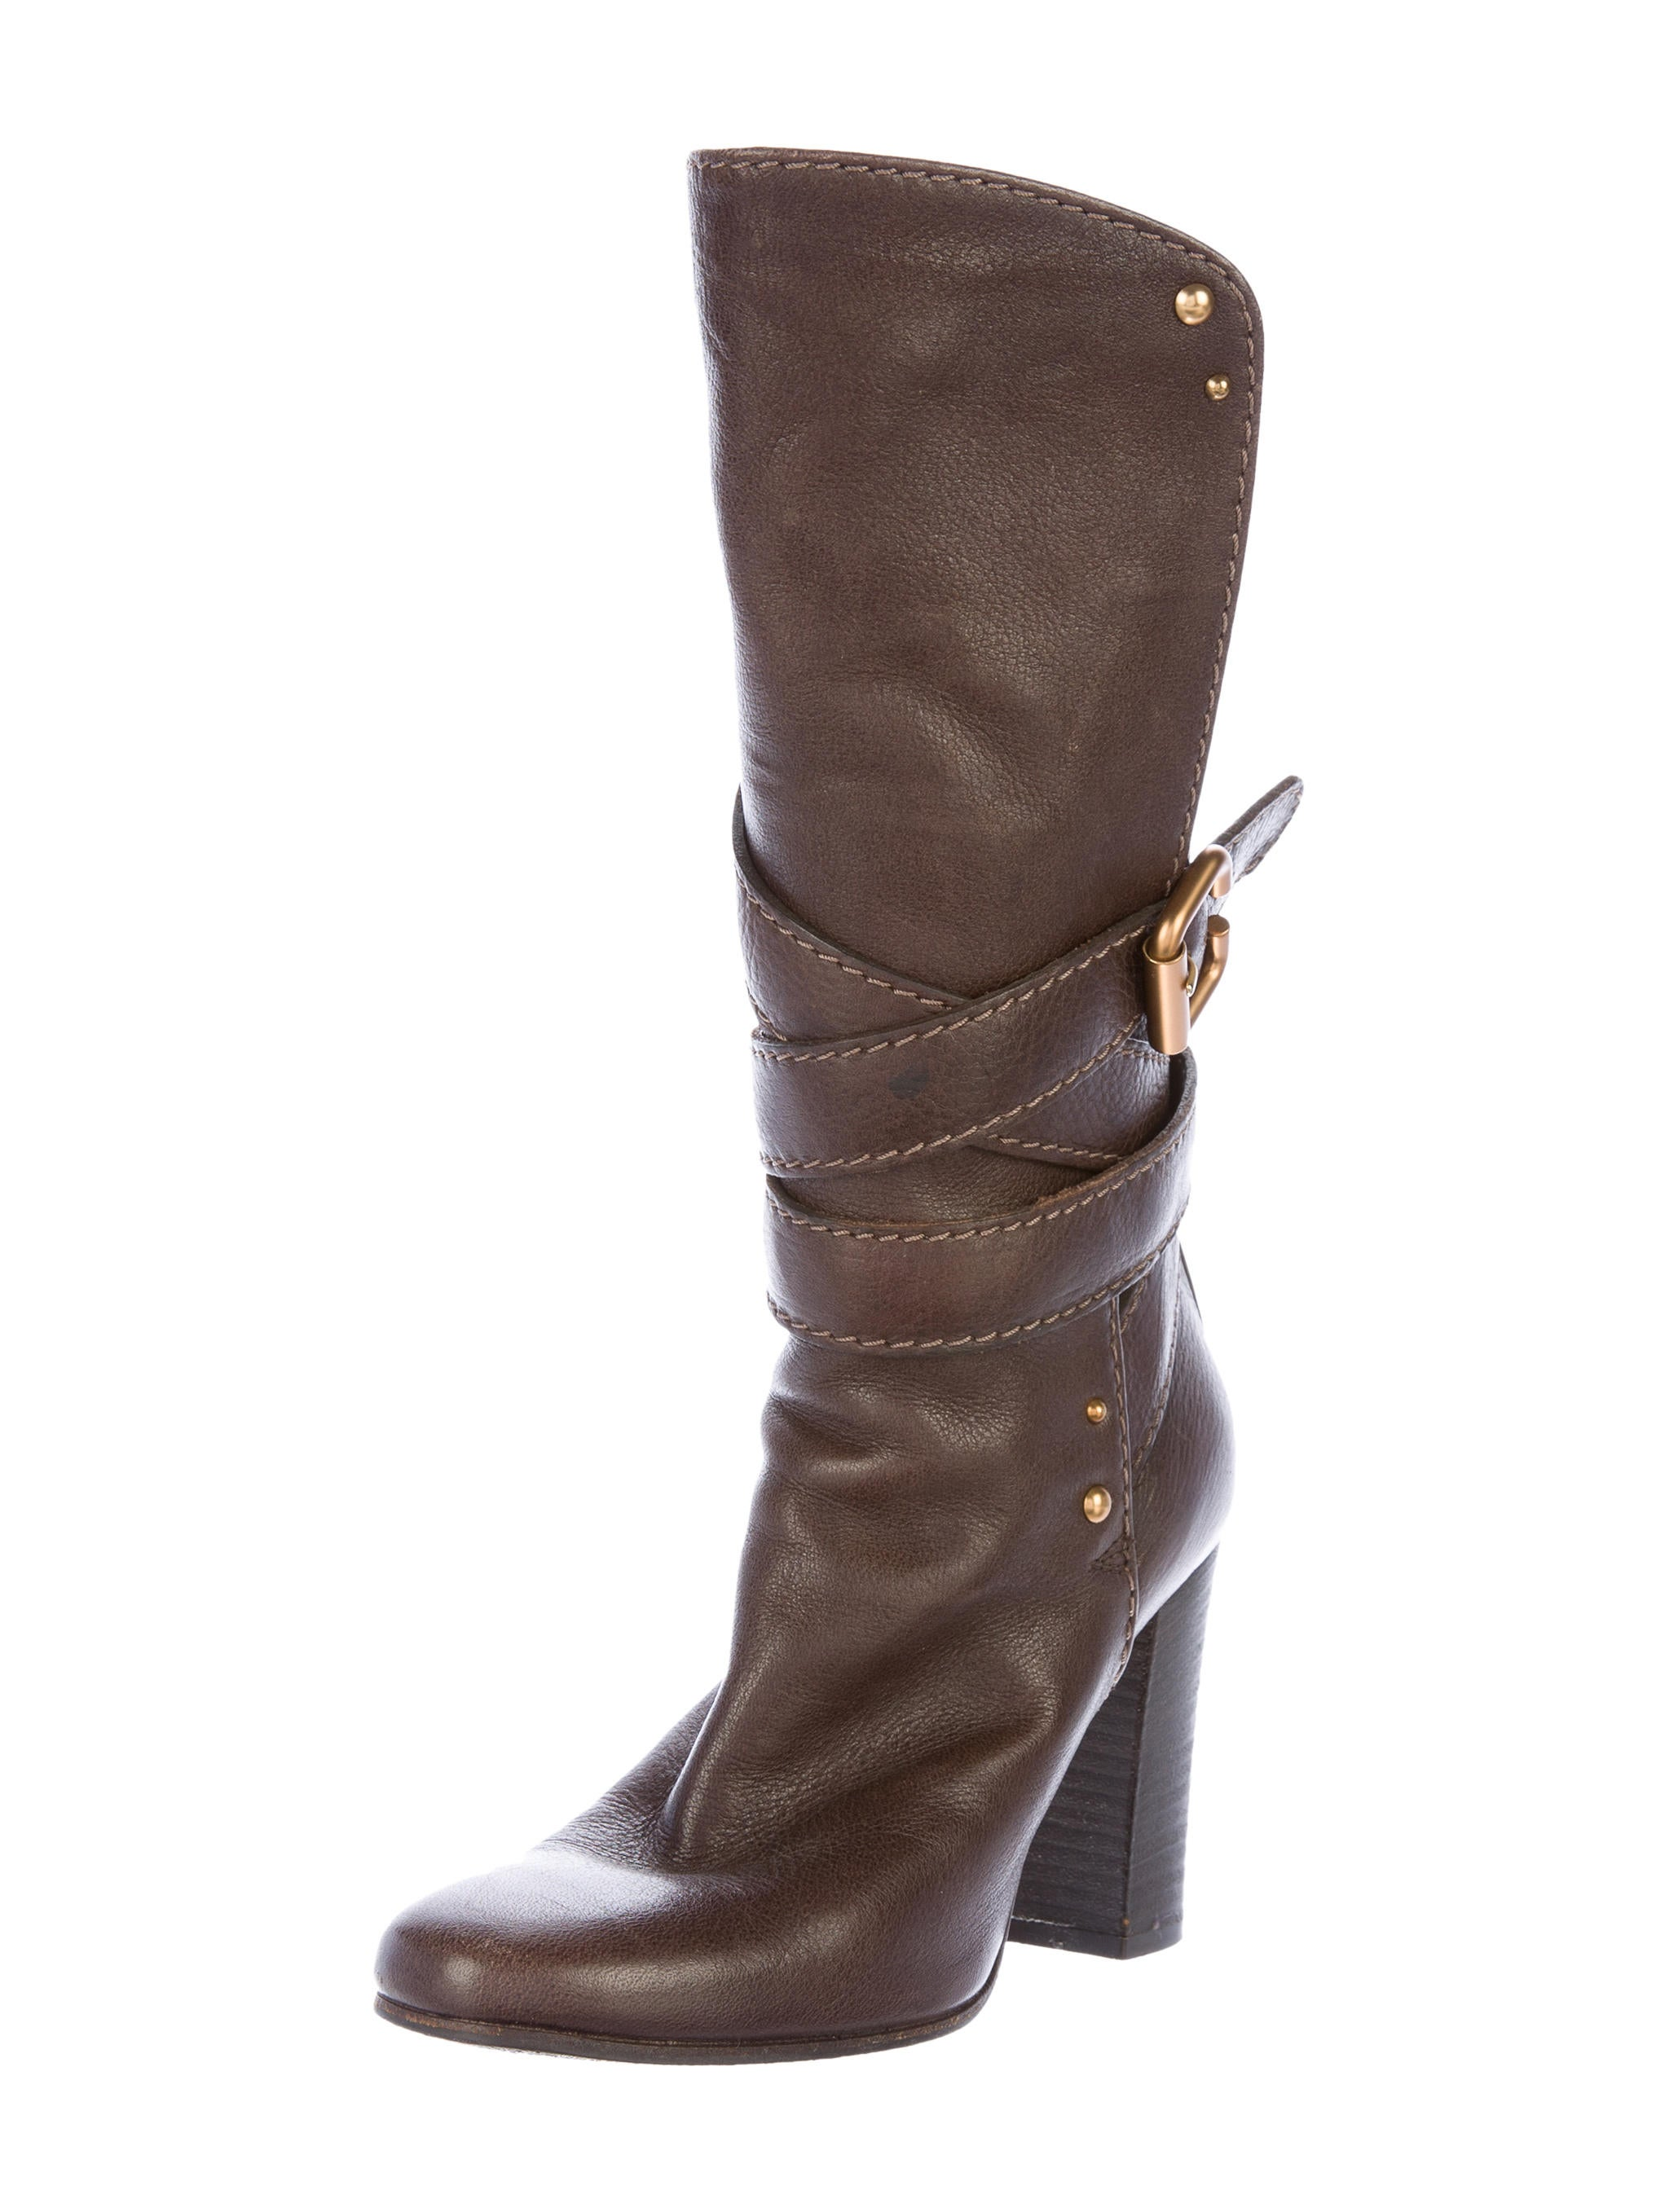 Chlo233 Buckle Accented Mid Calf Boots Shoes CHL52795  : CHL527952enlarged from www.therealreal.com size 2059 x 2715 jpeg 311kB